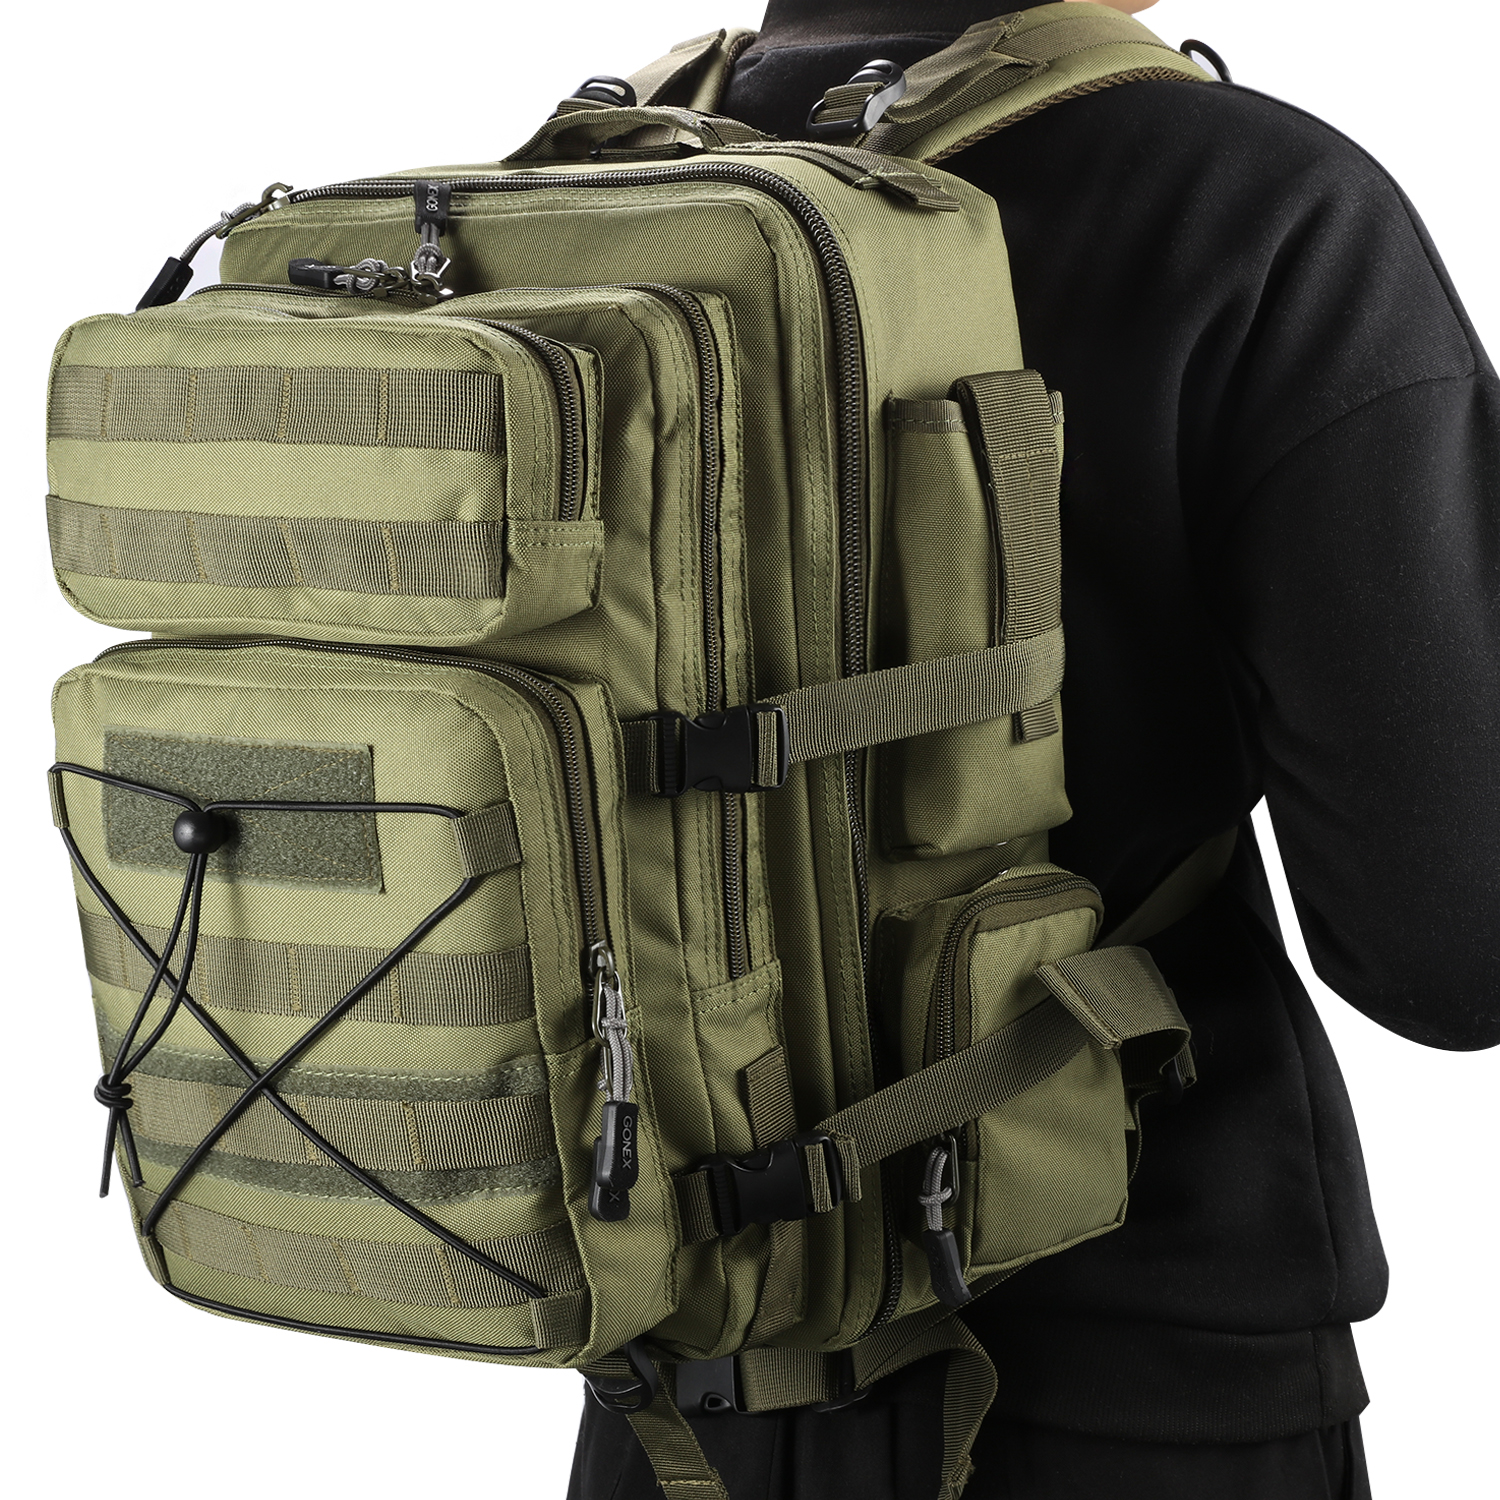 25L Molle Tactical Outdoor Military Assault Backpack Camping Hiking Pack Bag